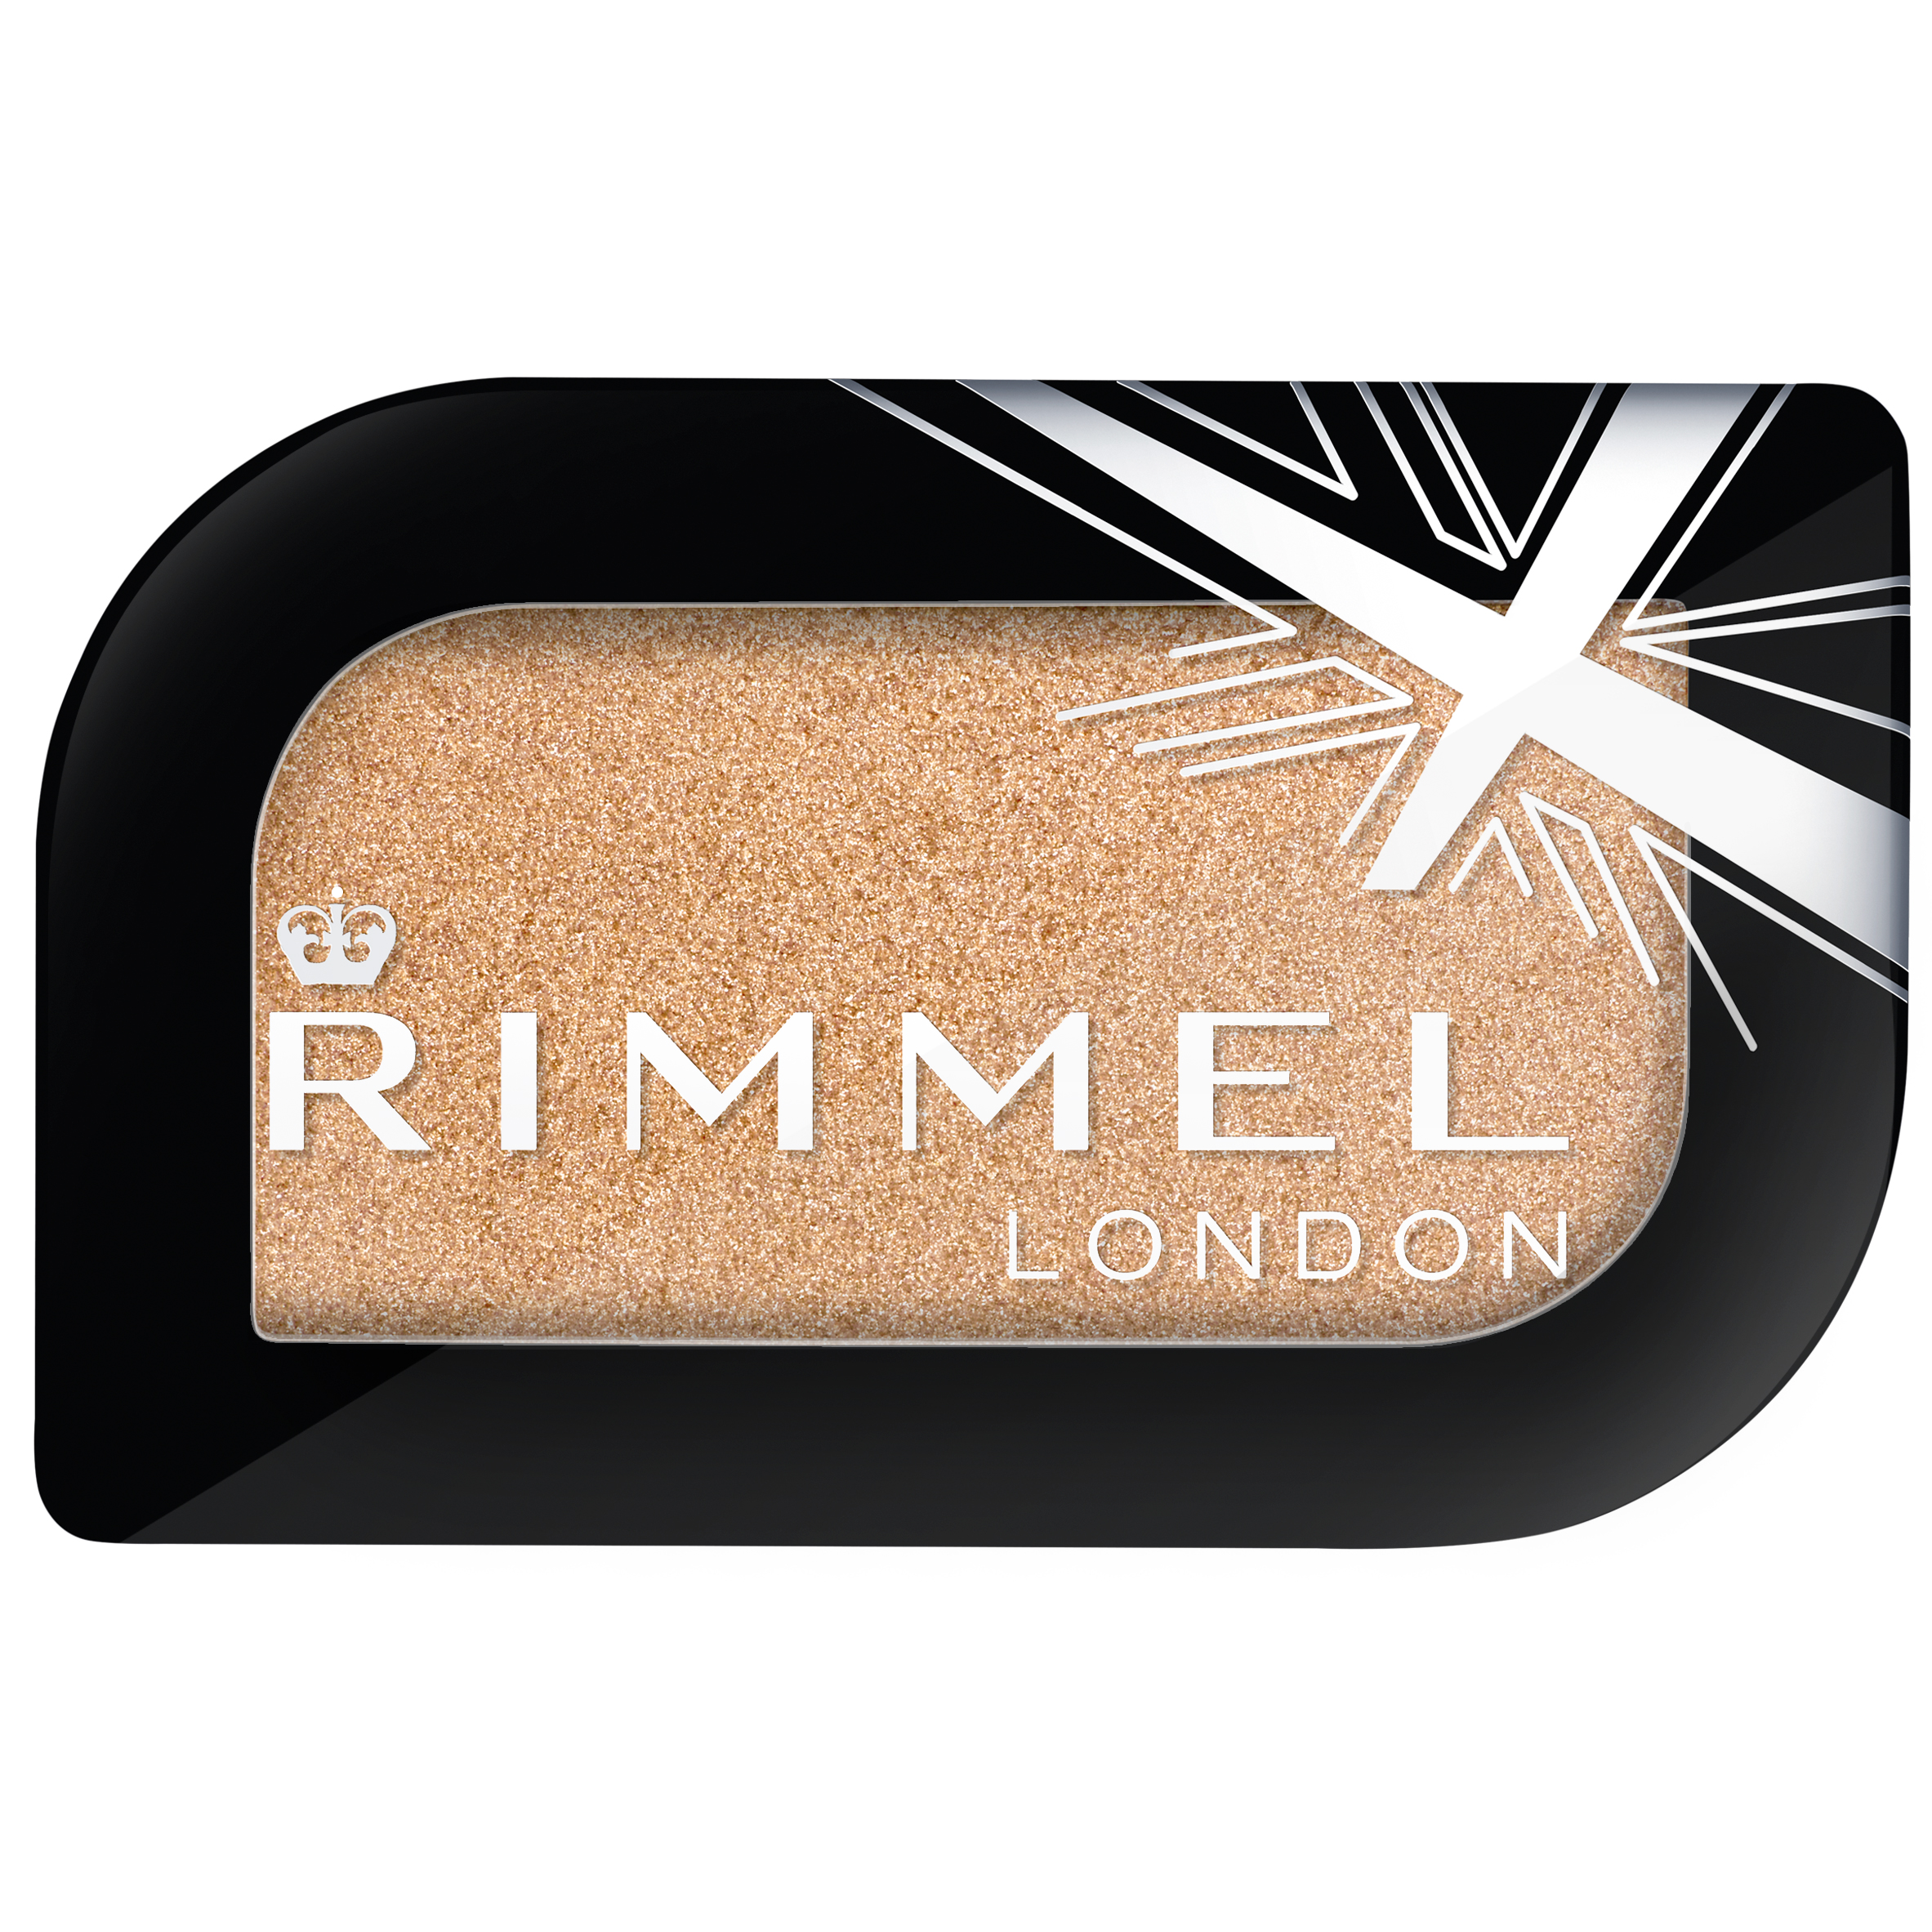 Rimmel London Magnif'eyes Mono Eyeshadow, 001 Gold Record, .16 oz